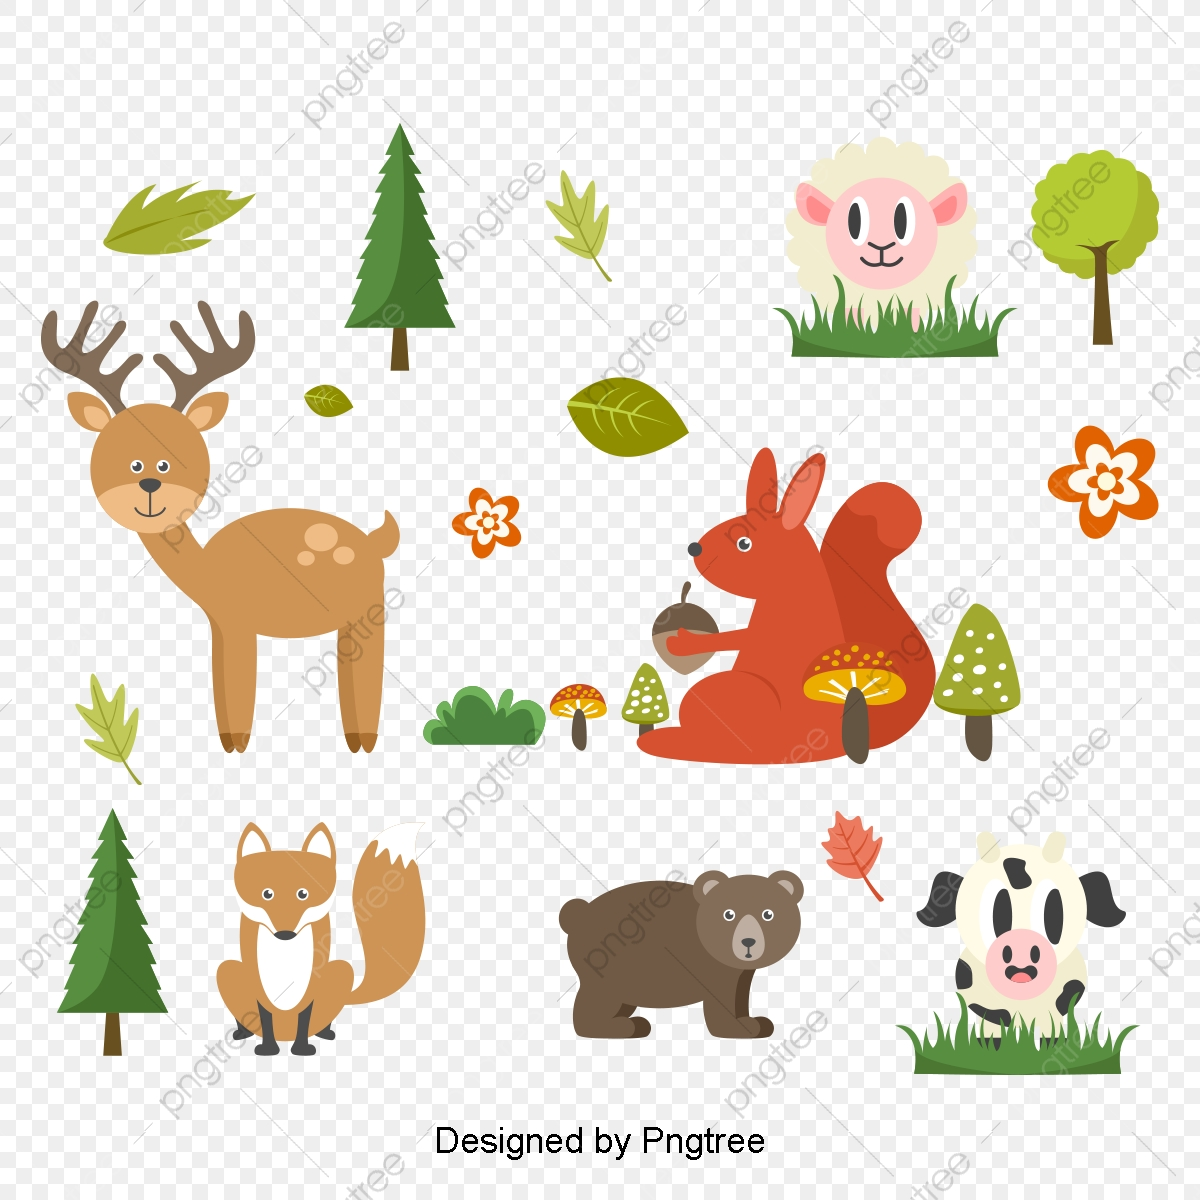 hight resolution of commercial use resource upgrade to premium plan and get license authorization upgradenow vector farm animals farm clipart